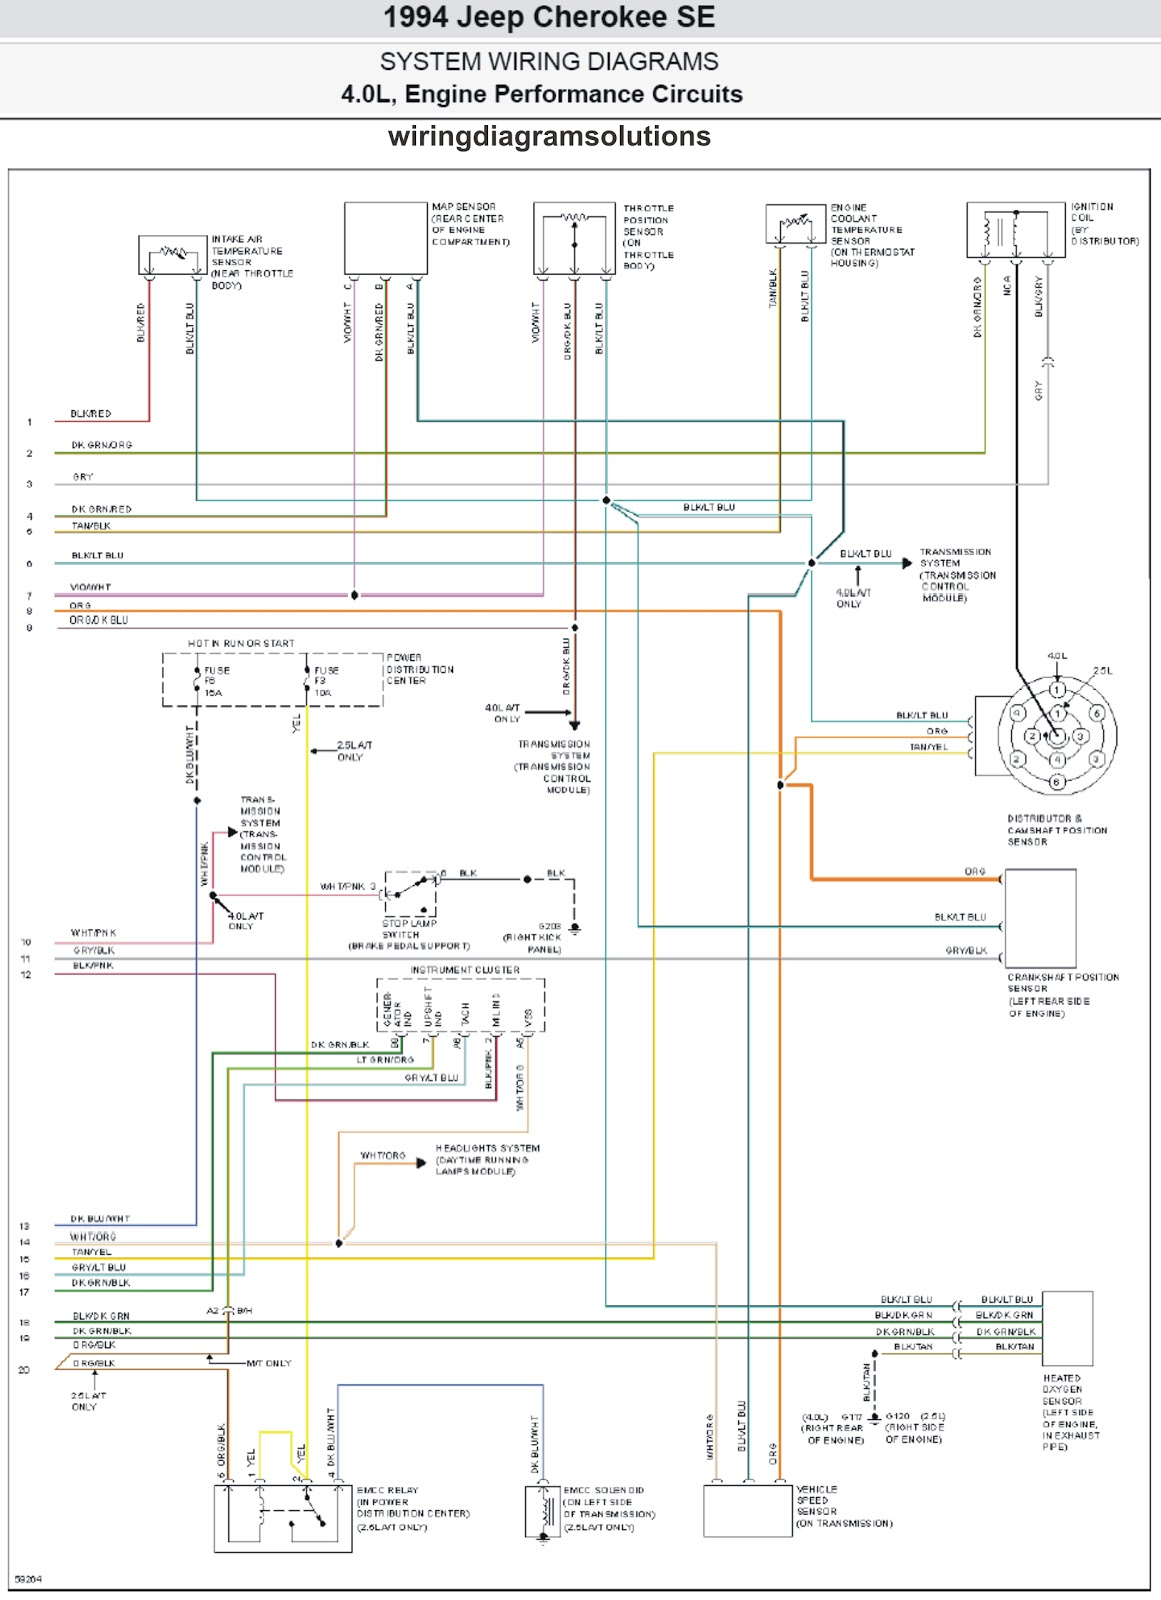 1994+Jeep+Cherokee+SE_2 2005 grand cherokee wiring diagram 2005 free wiring diagrams  at soozxer.org